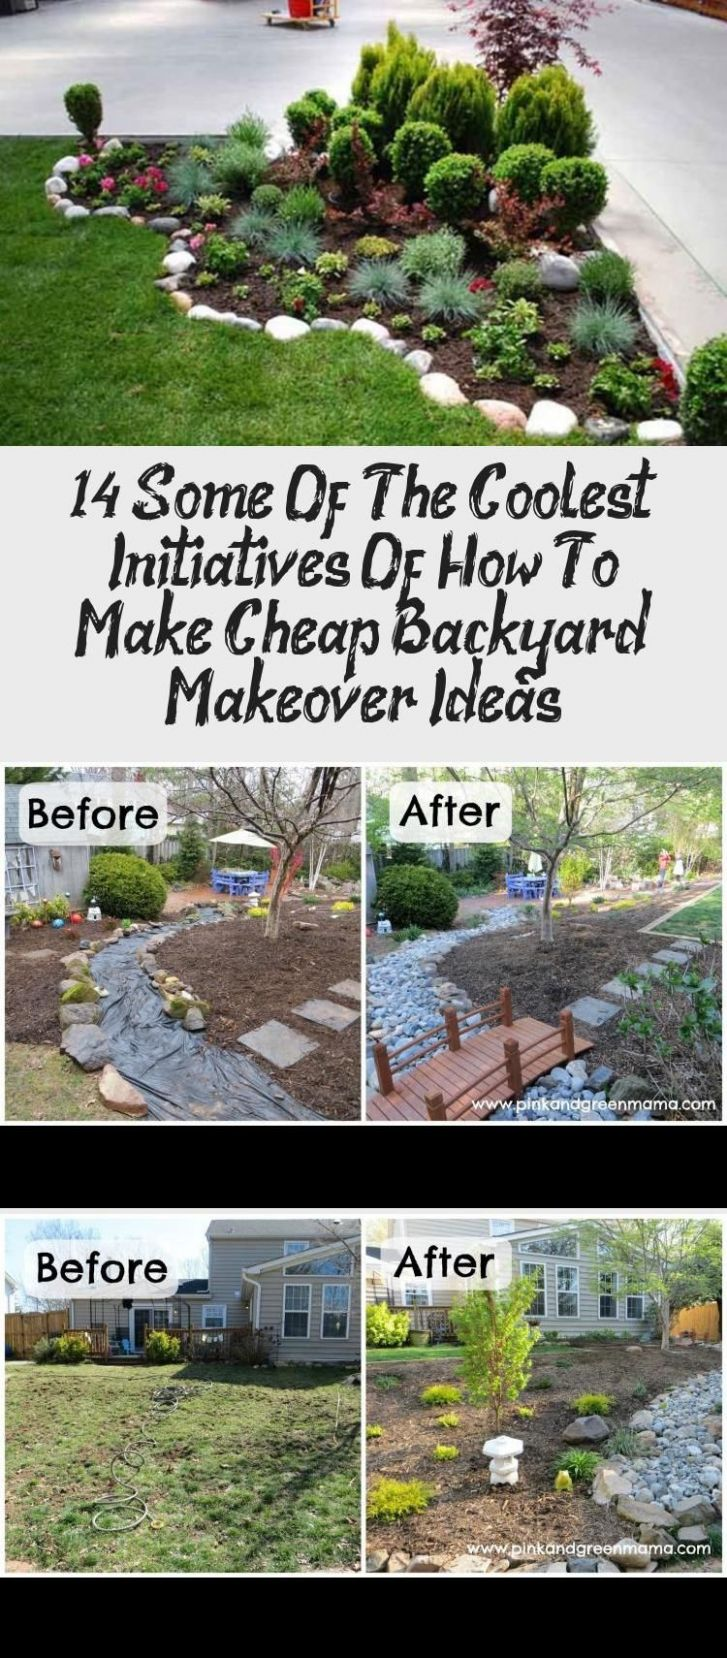 12 Some Of The Coolest Initiatives Of How To Make Cheap Backyard ...